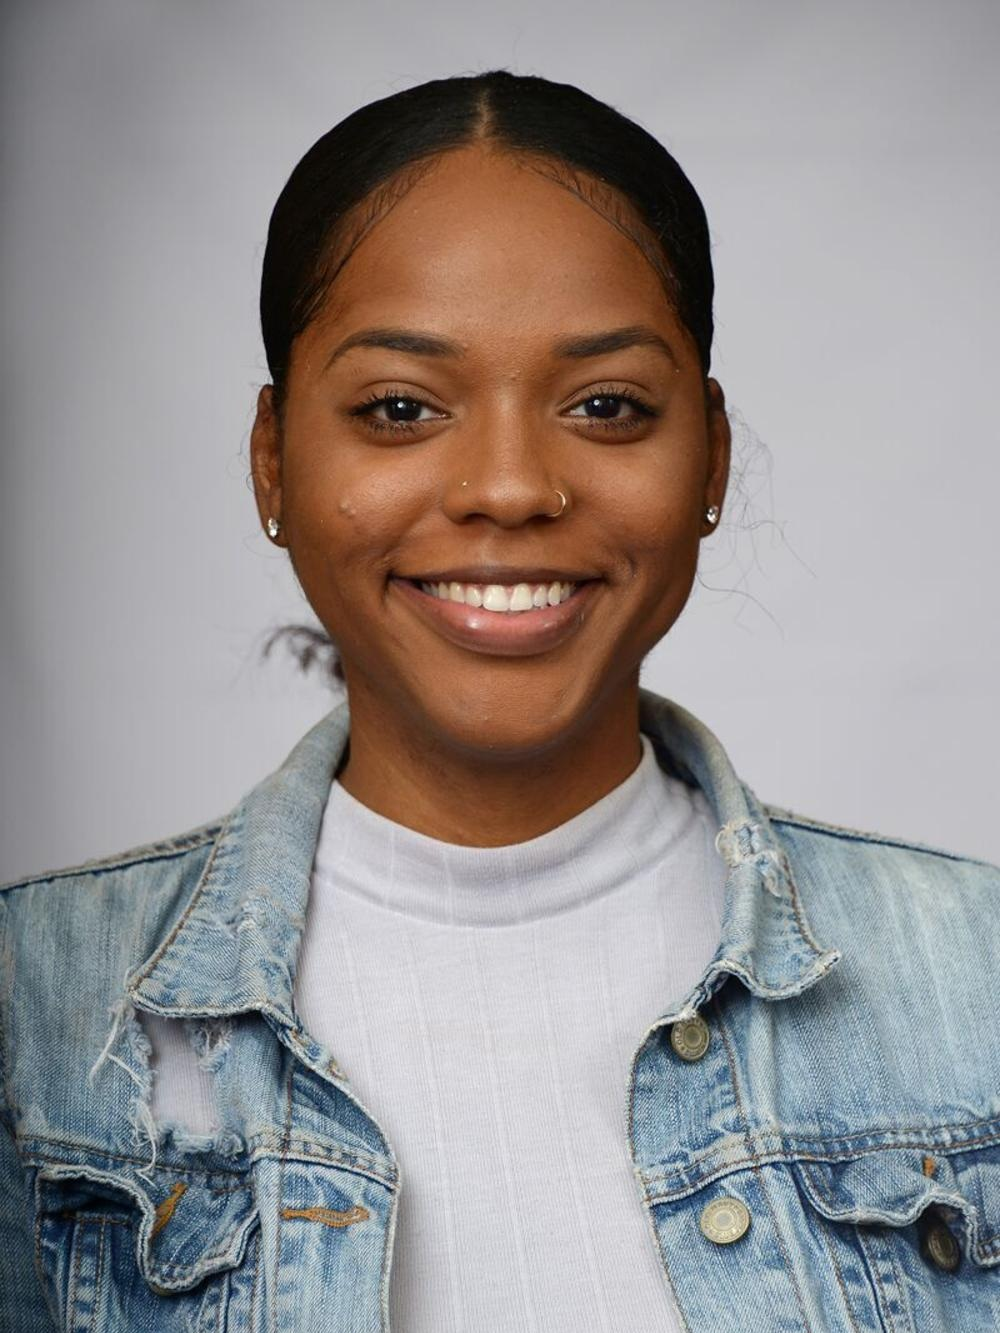 Tatiyana Whitley - As youth, we tend to underestimate our own worth and the value we can bring to juvenile justice policy. The Justice Advisors program reminds those who have been in the system that they still have a chance.My goal is to raise community awareness around youth incarceration and to promote reforms that improve the experiences of youth in prison.